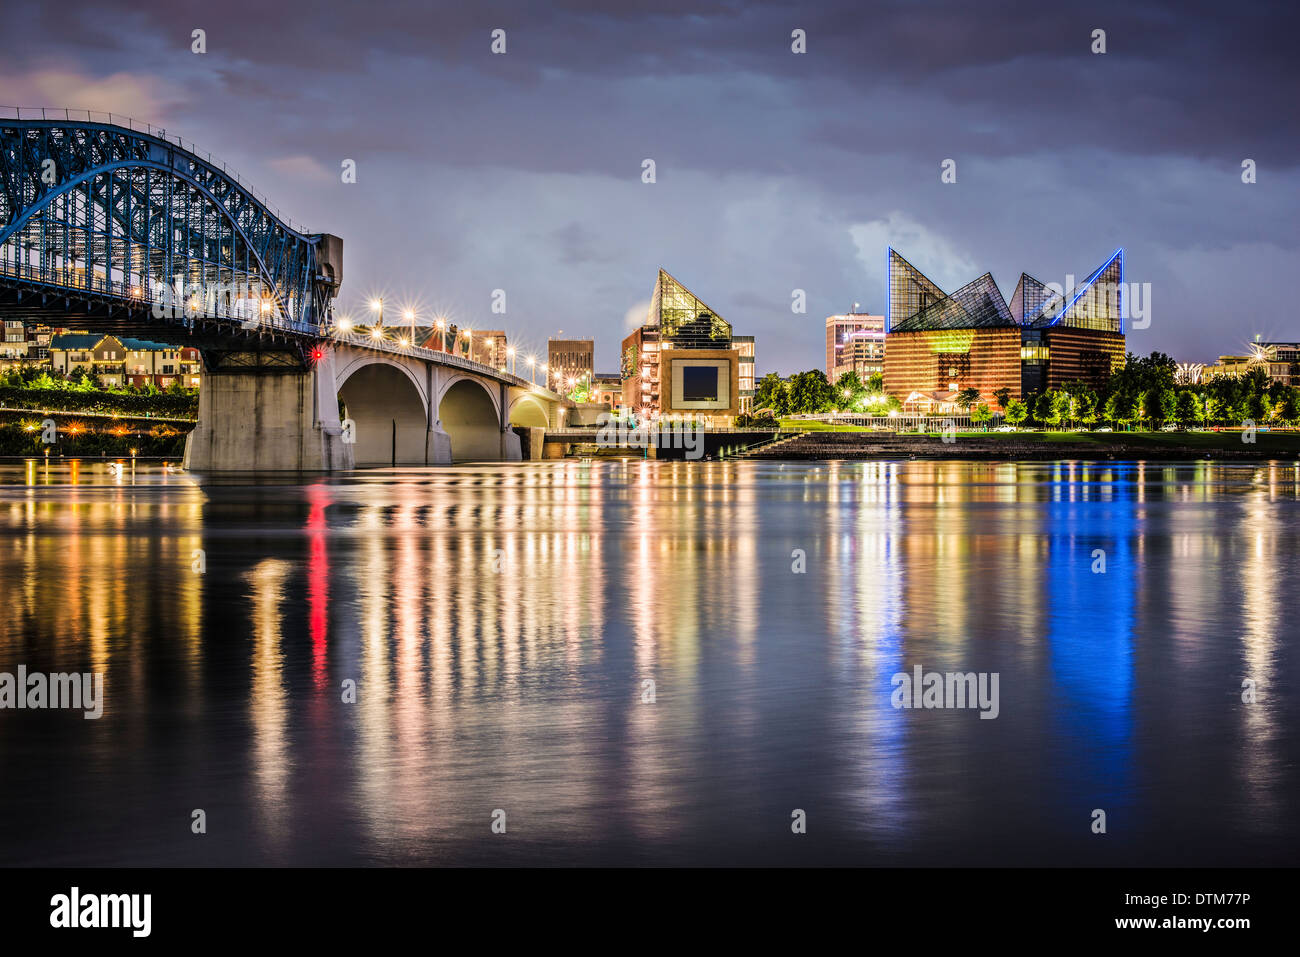 Chattanooga, Tennessee, USA downtown across the Tennessee River. - Stock Image